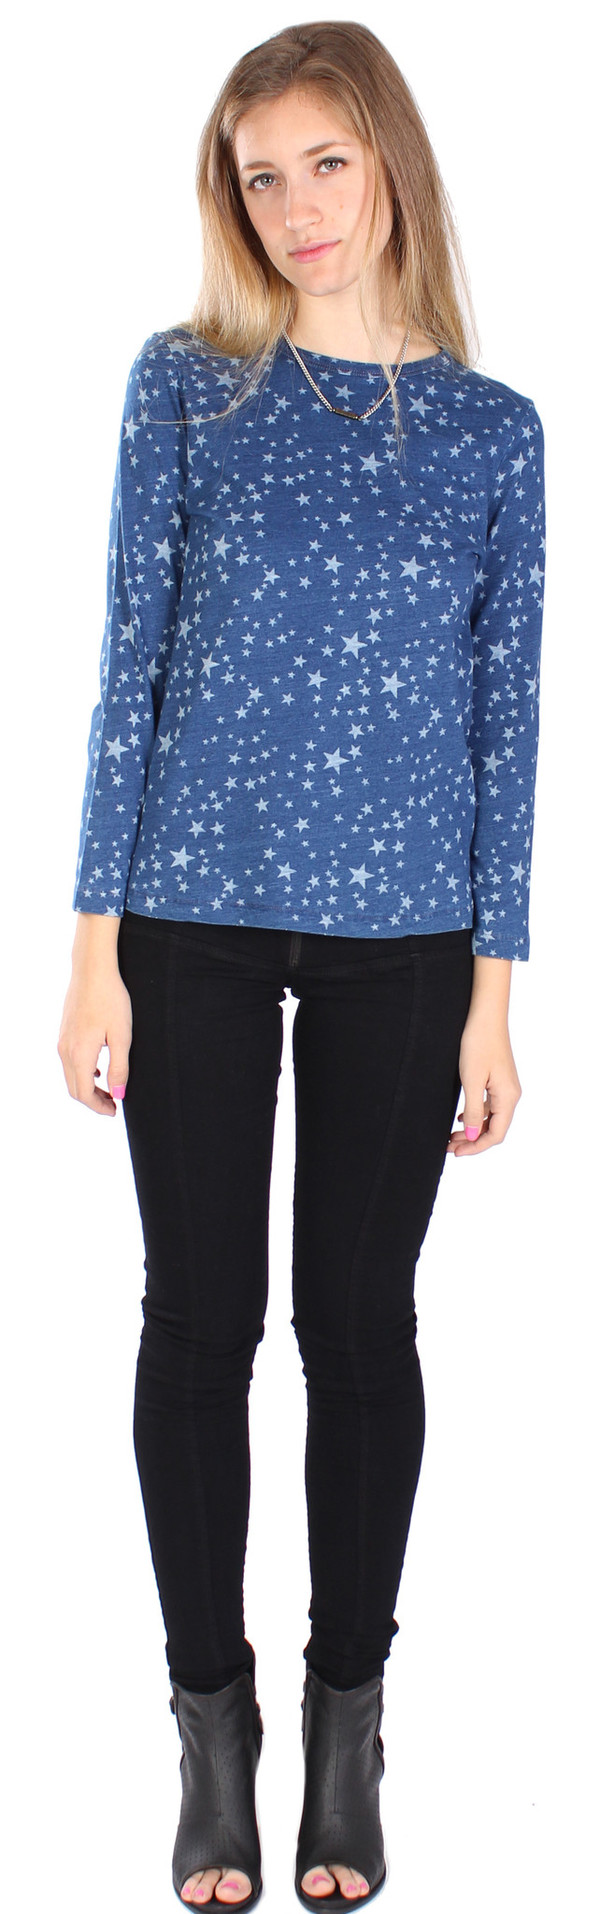 Stars Long Sleeve Tee